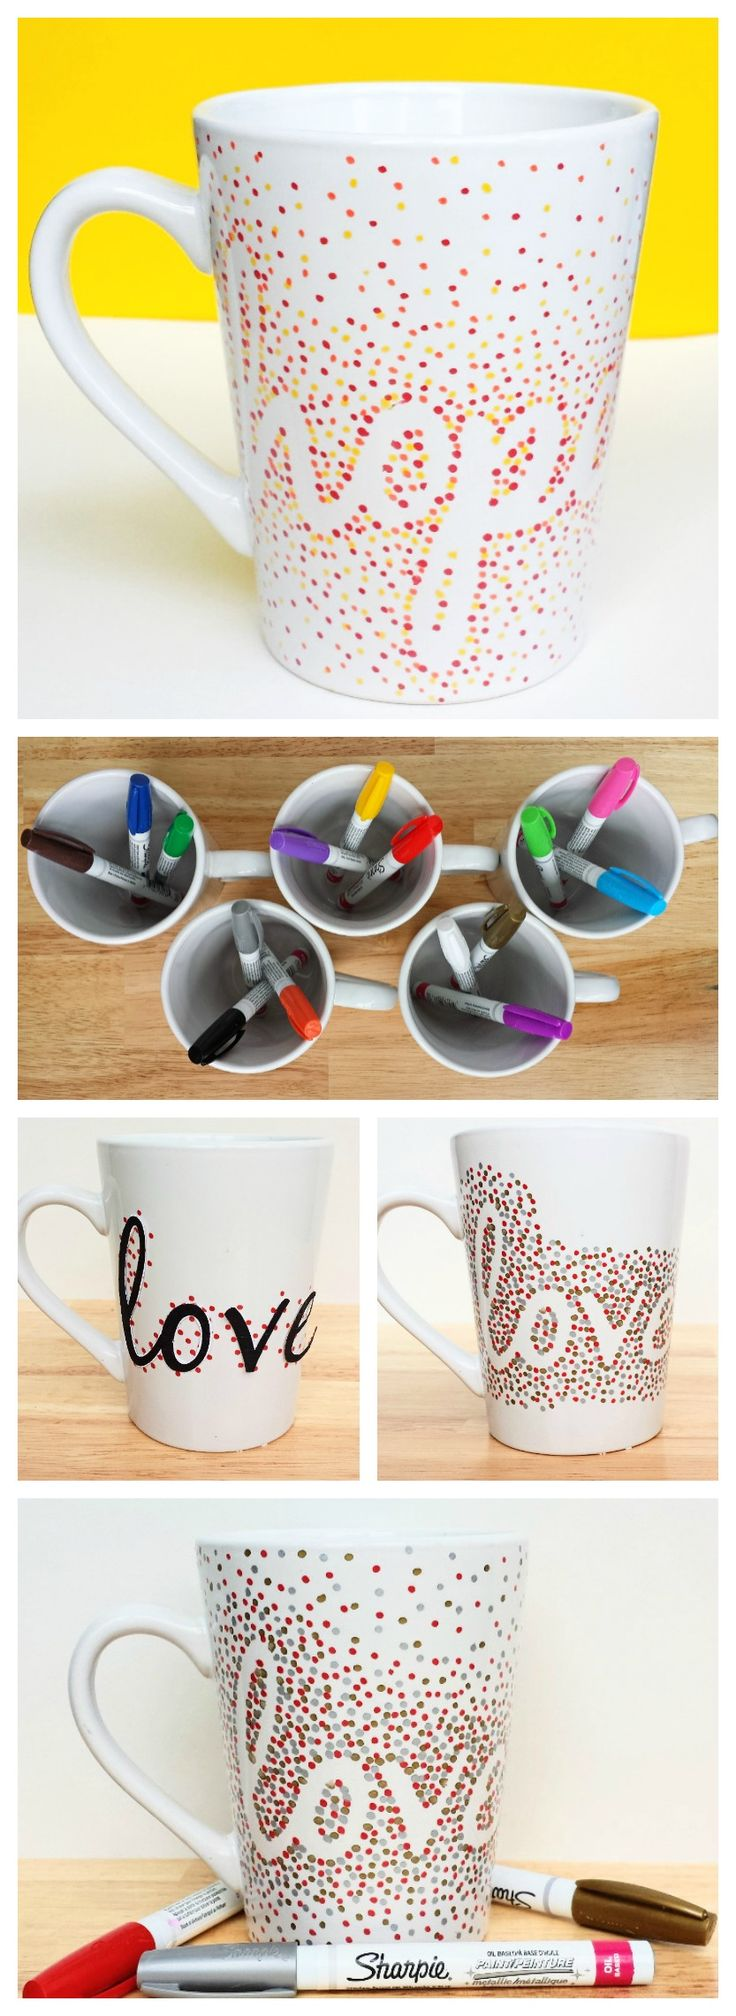 DIY Dotted Sharpie Mugs Using Dollar Store Mugs-this would be fun for Christmas activity. Kids could make their own hot chocolate mugs.